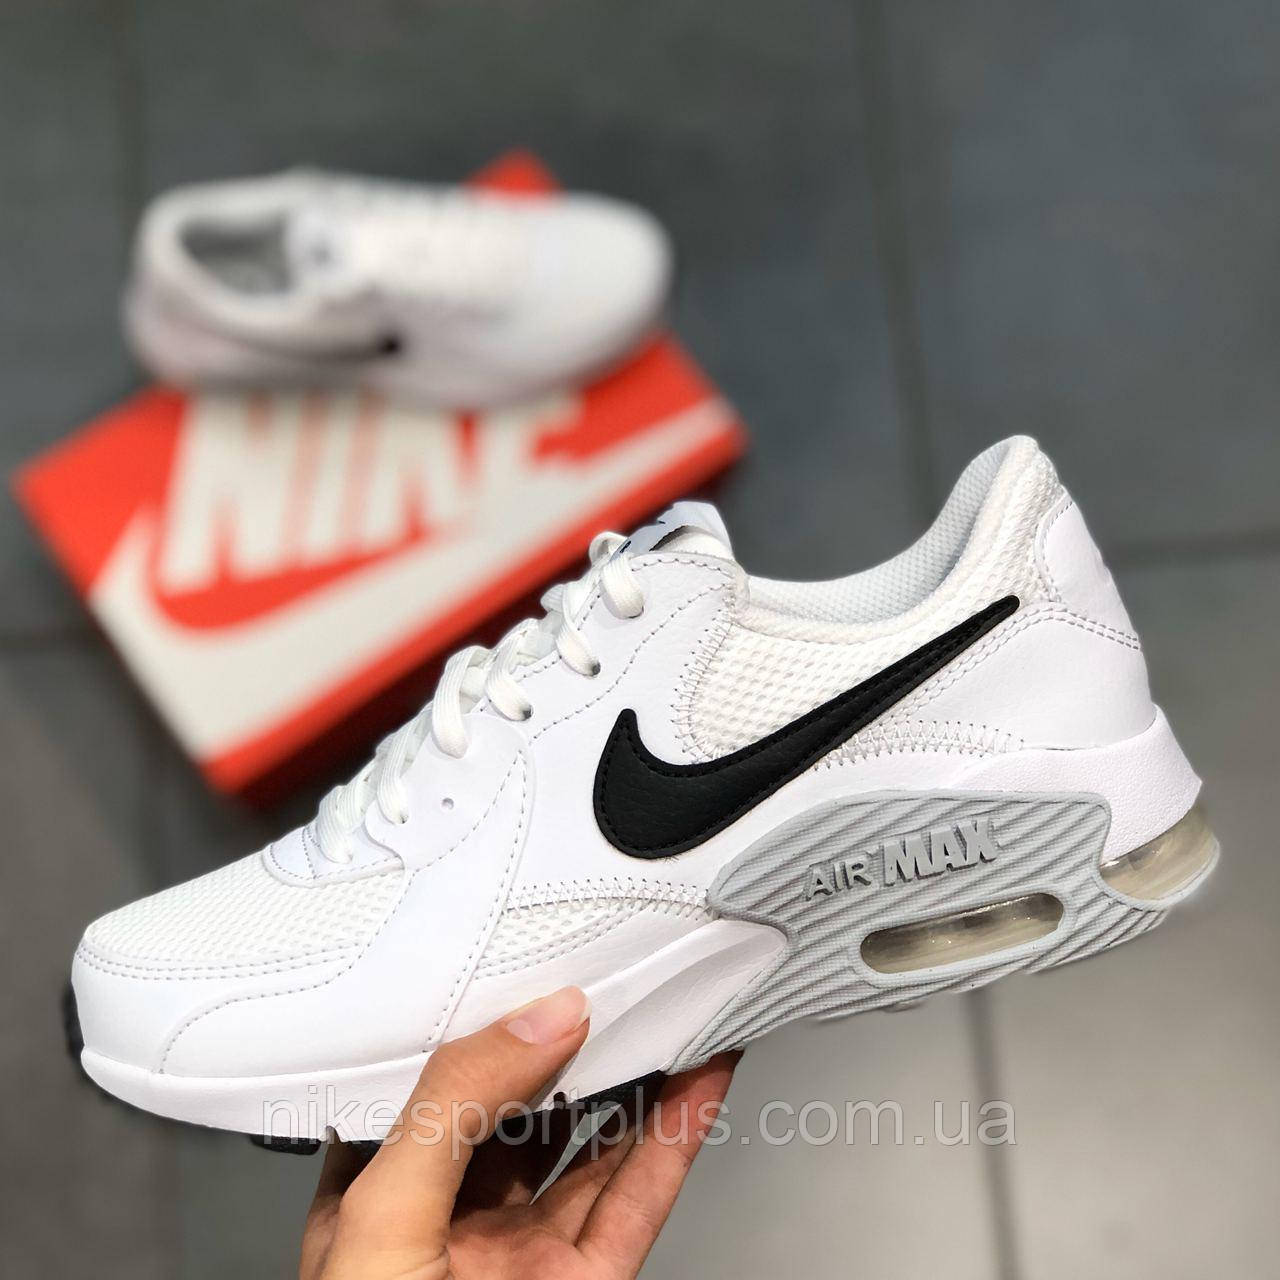 КРОССОВКИ WMNS NIKE AIR MAX EXCEE CD5432-101